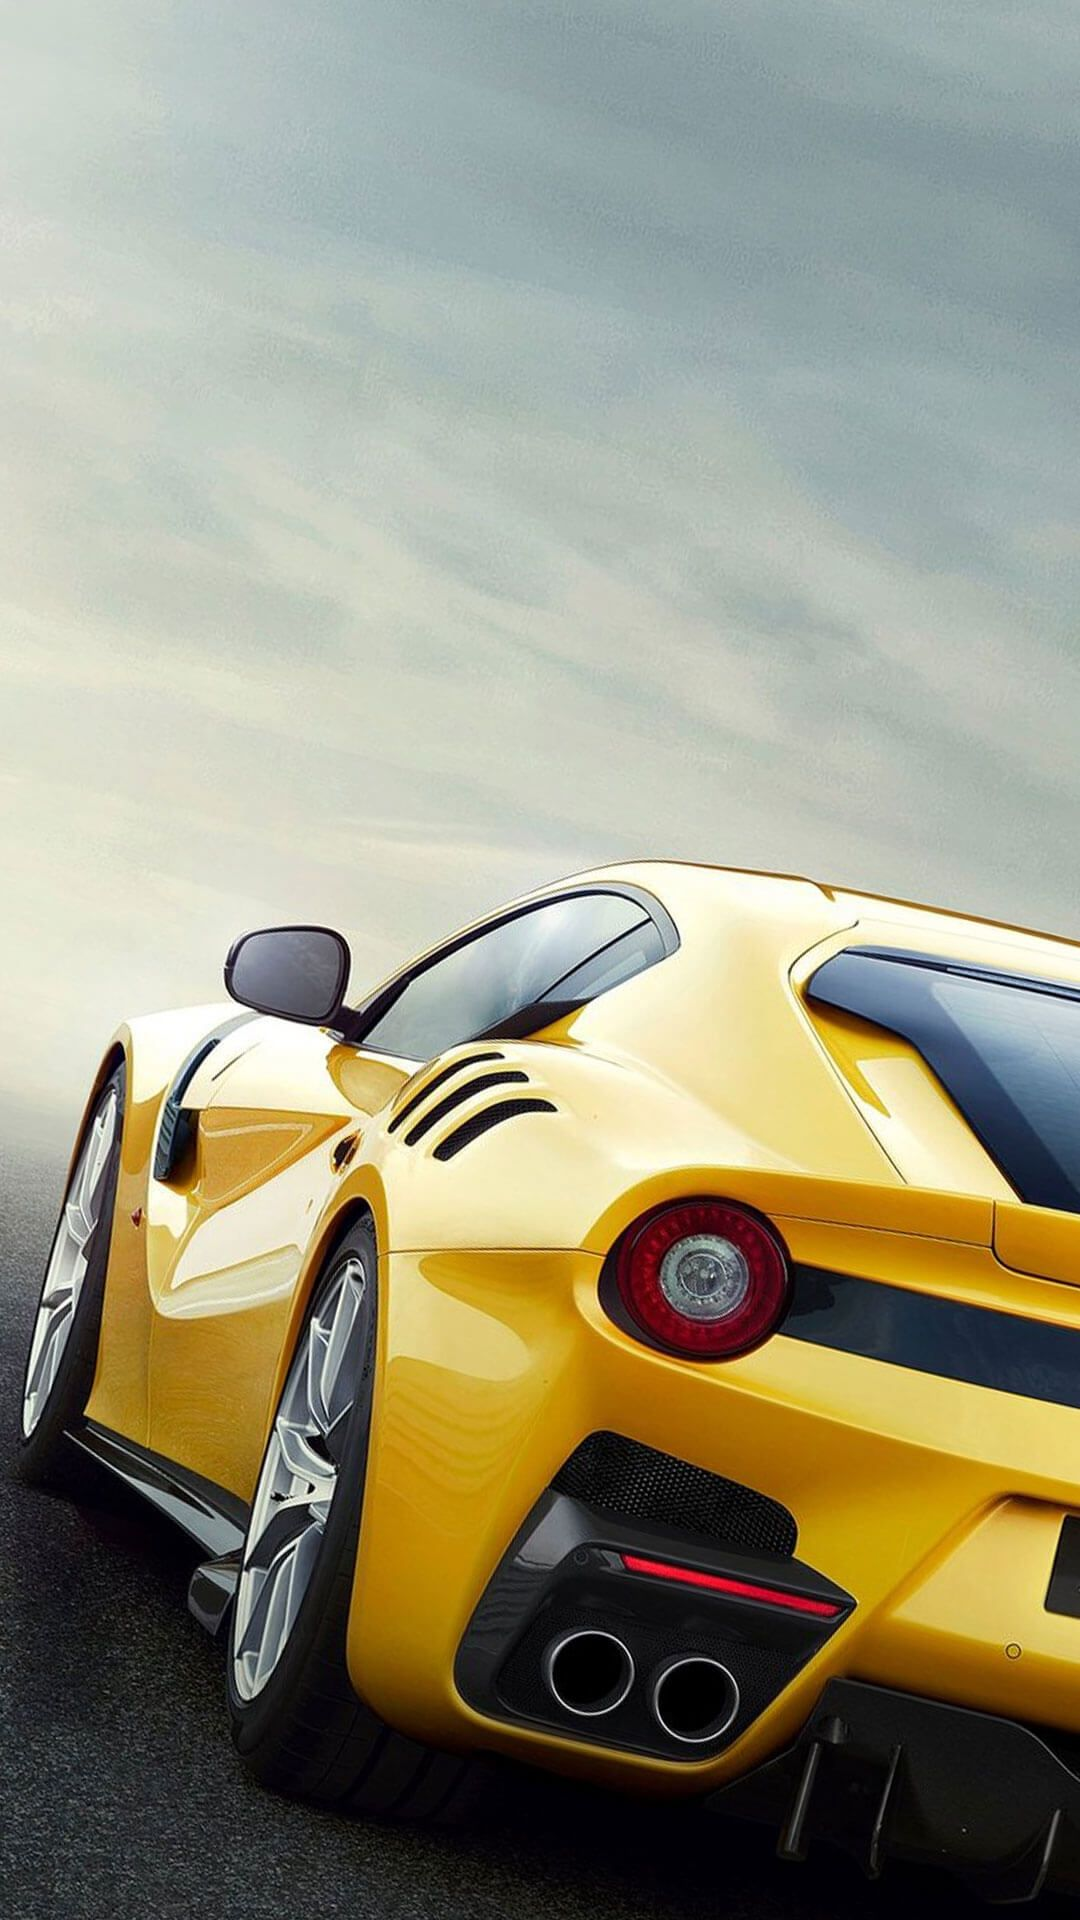 page mobile phone x ferrari wallpapers hd desktop | wallpaper